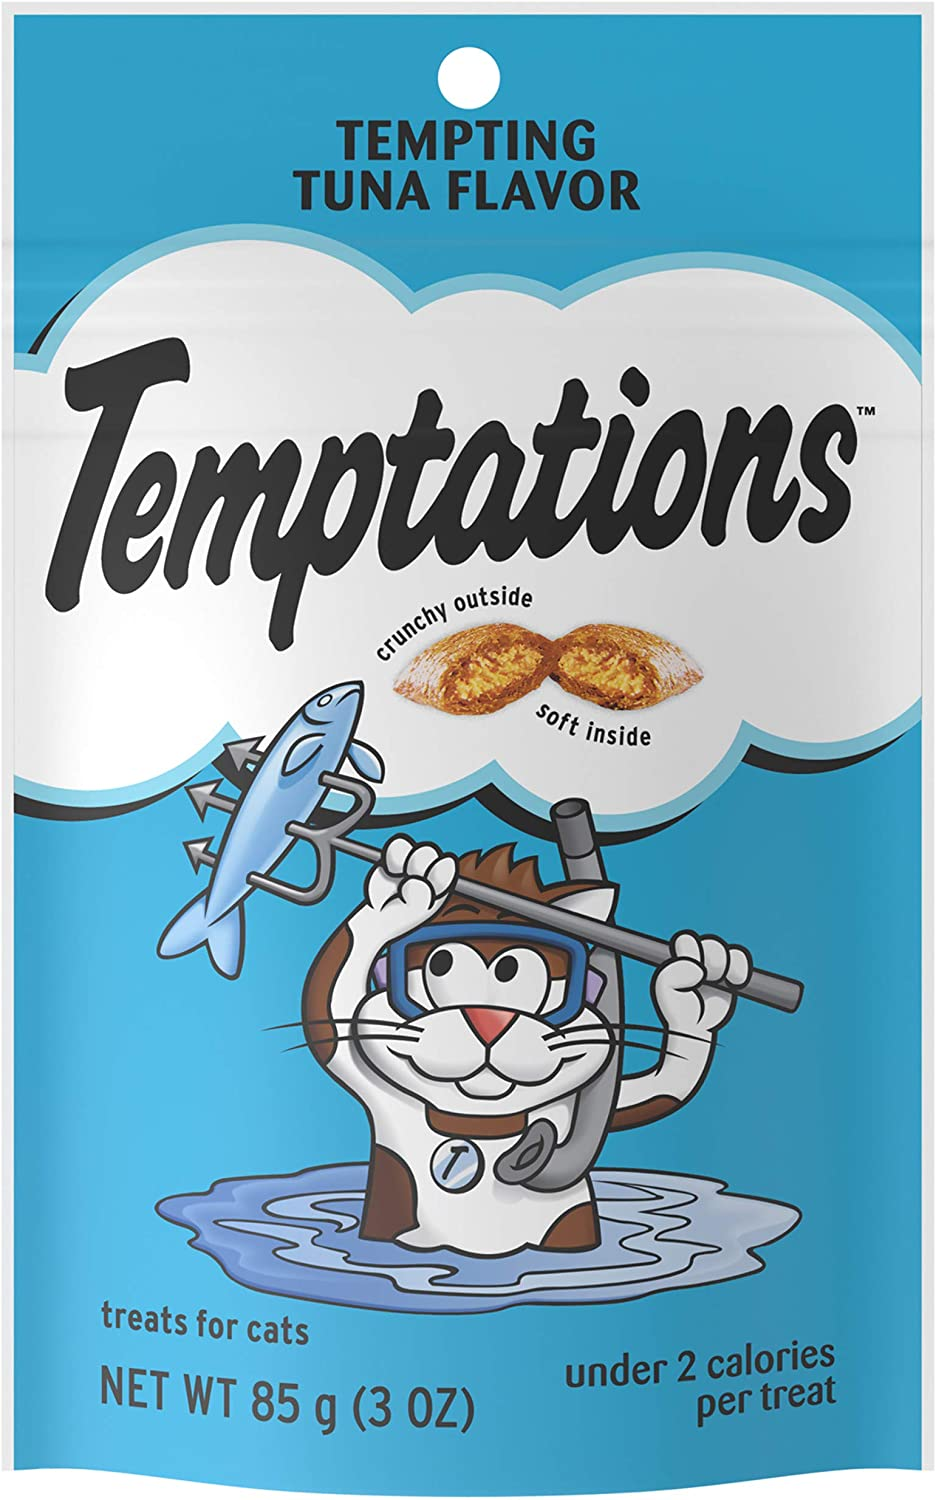 TEMPTATIONS Classic Crunchy and Soft Cat Treats Tempting Tuna Flavor, 3 oz. Pouch (Pack of 12)